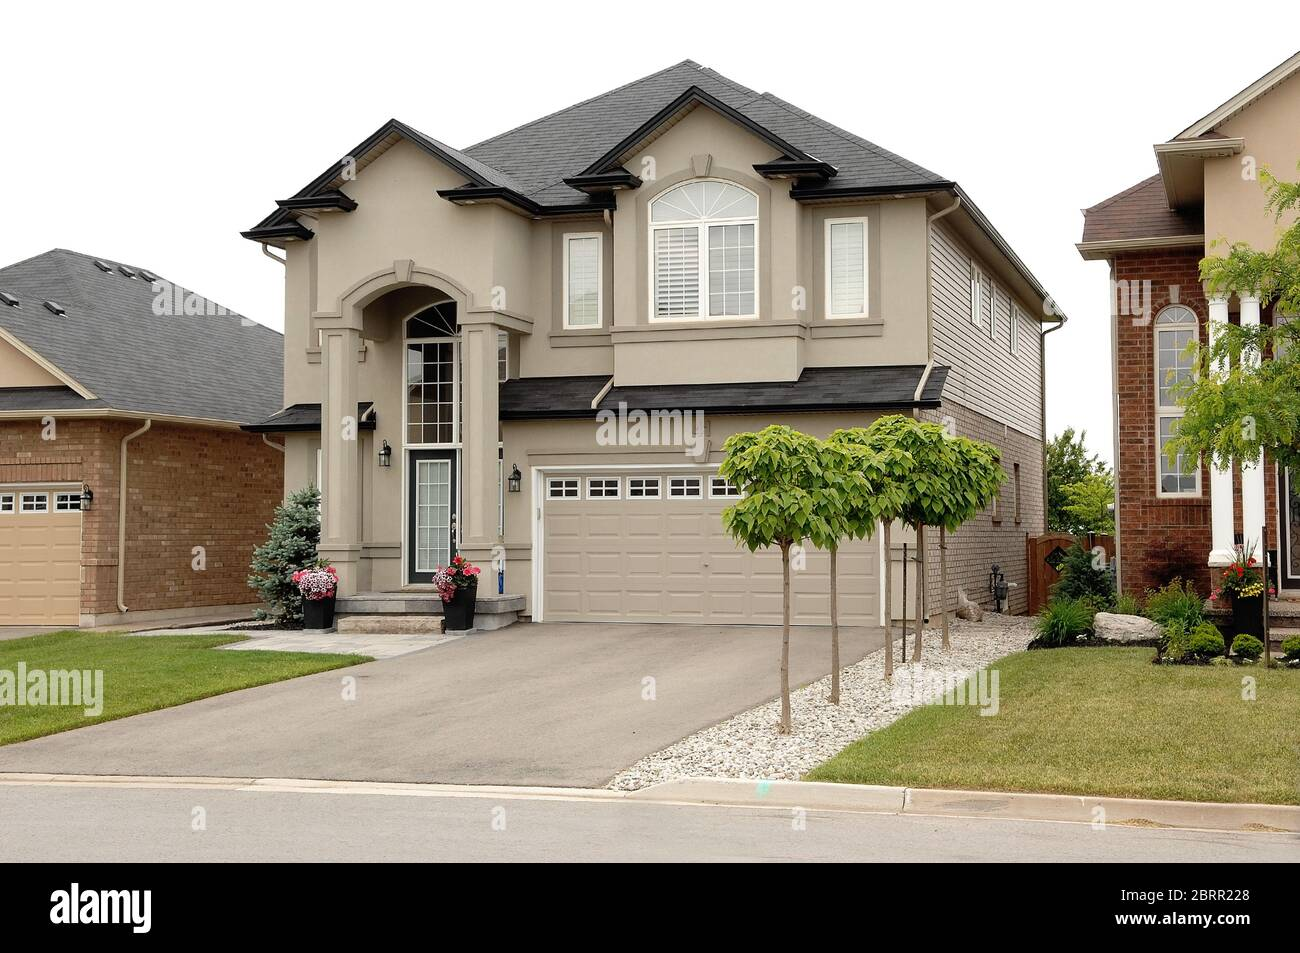 A New Big Two Story House In A Subdivision In Hamilton Canada With A Two Car Garage And Small Trees Stock Photo Alamy